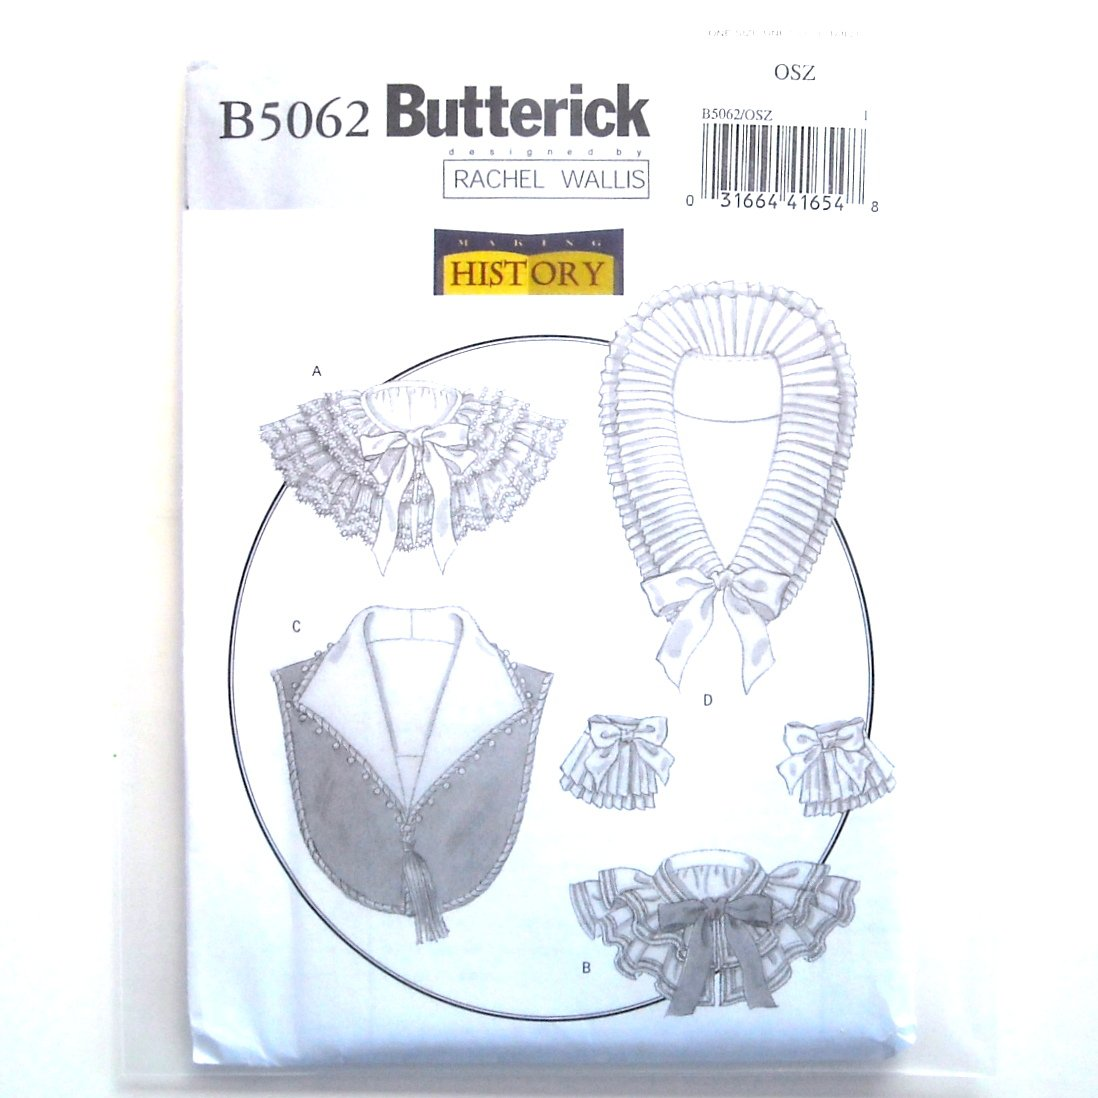 Butterick Pattern B5062 Out of Print Making History Costume Historical Collars Cuffs